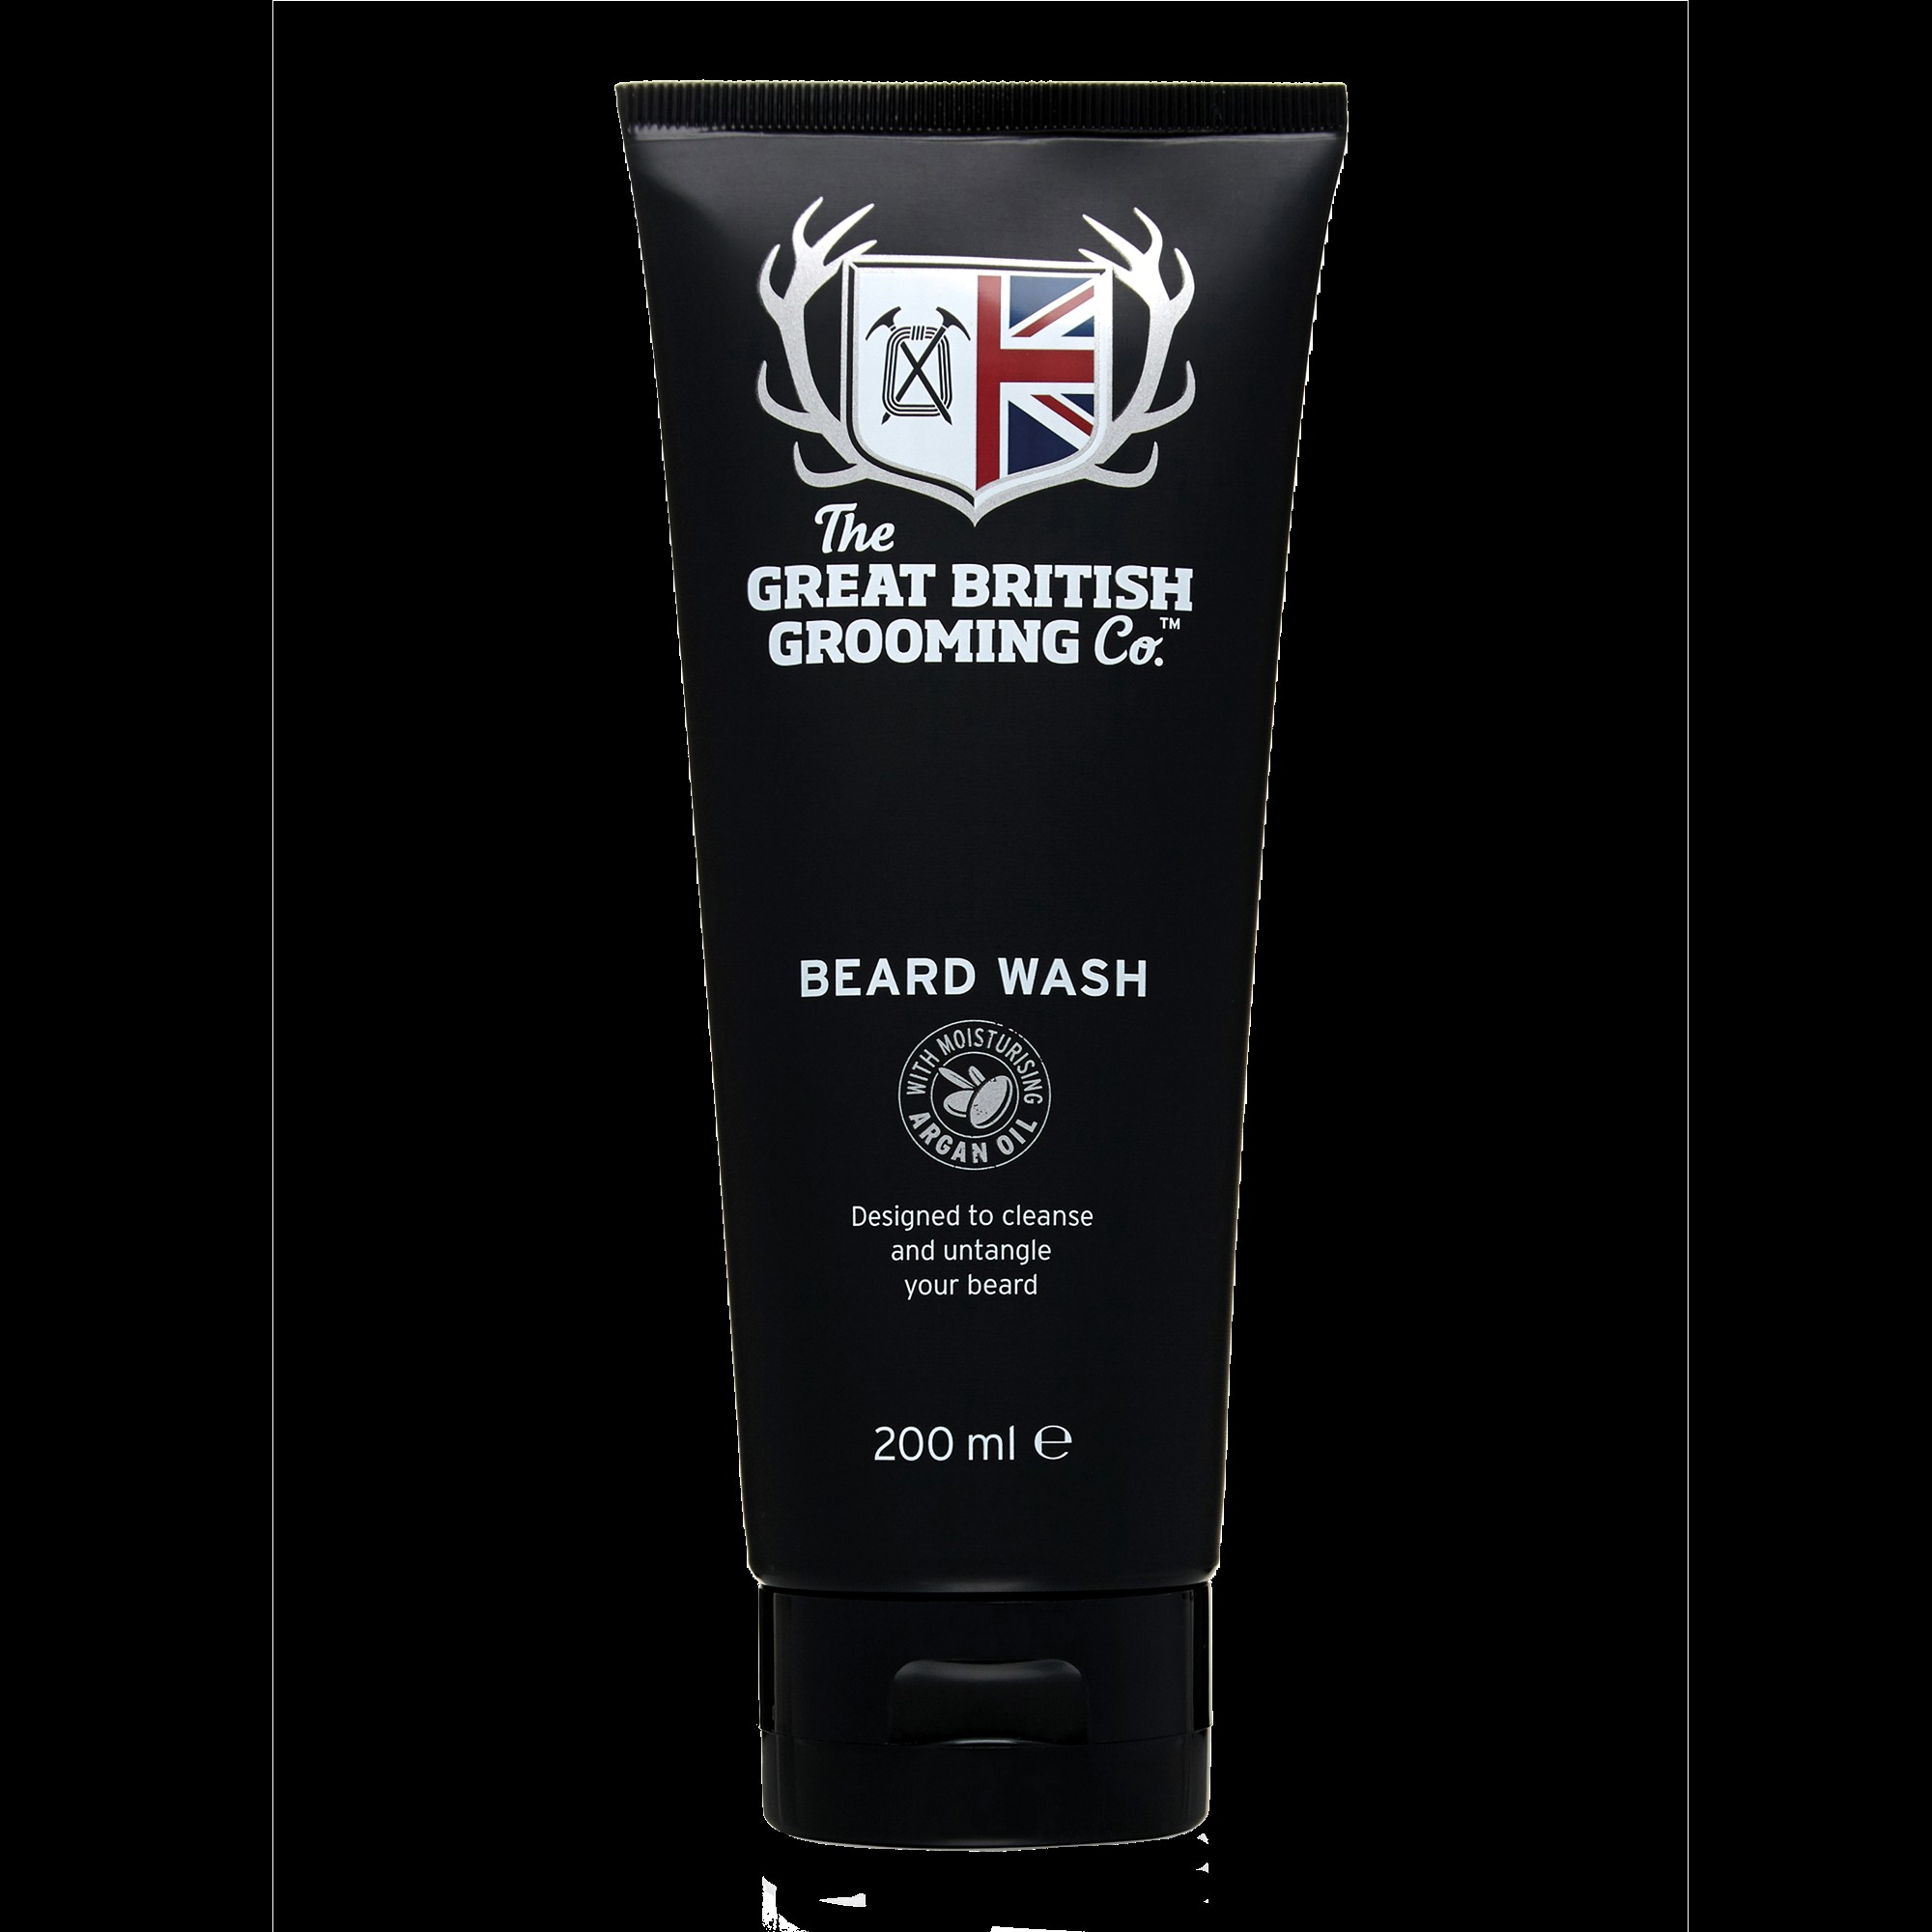 The Great British Grooming Co Beard Wash Bartshampoo Bart